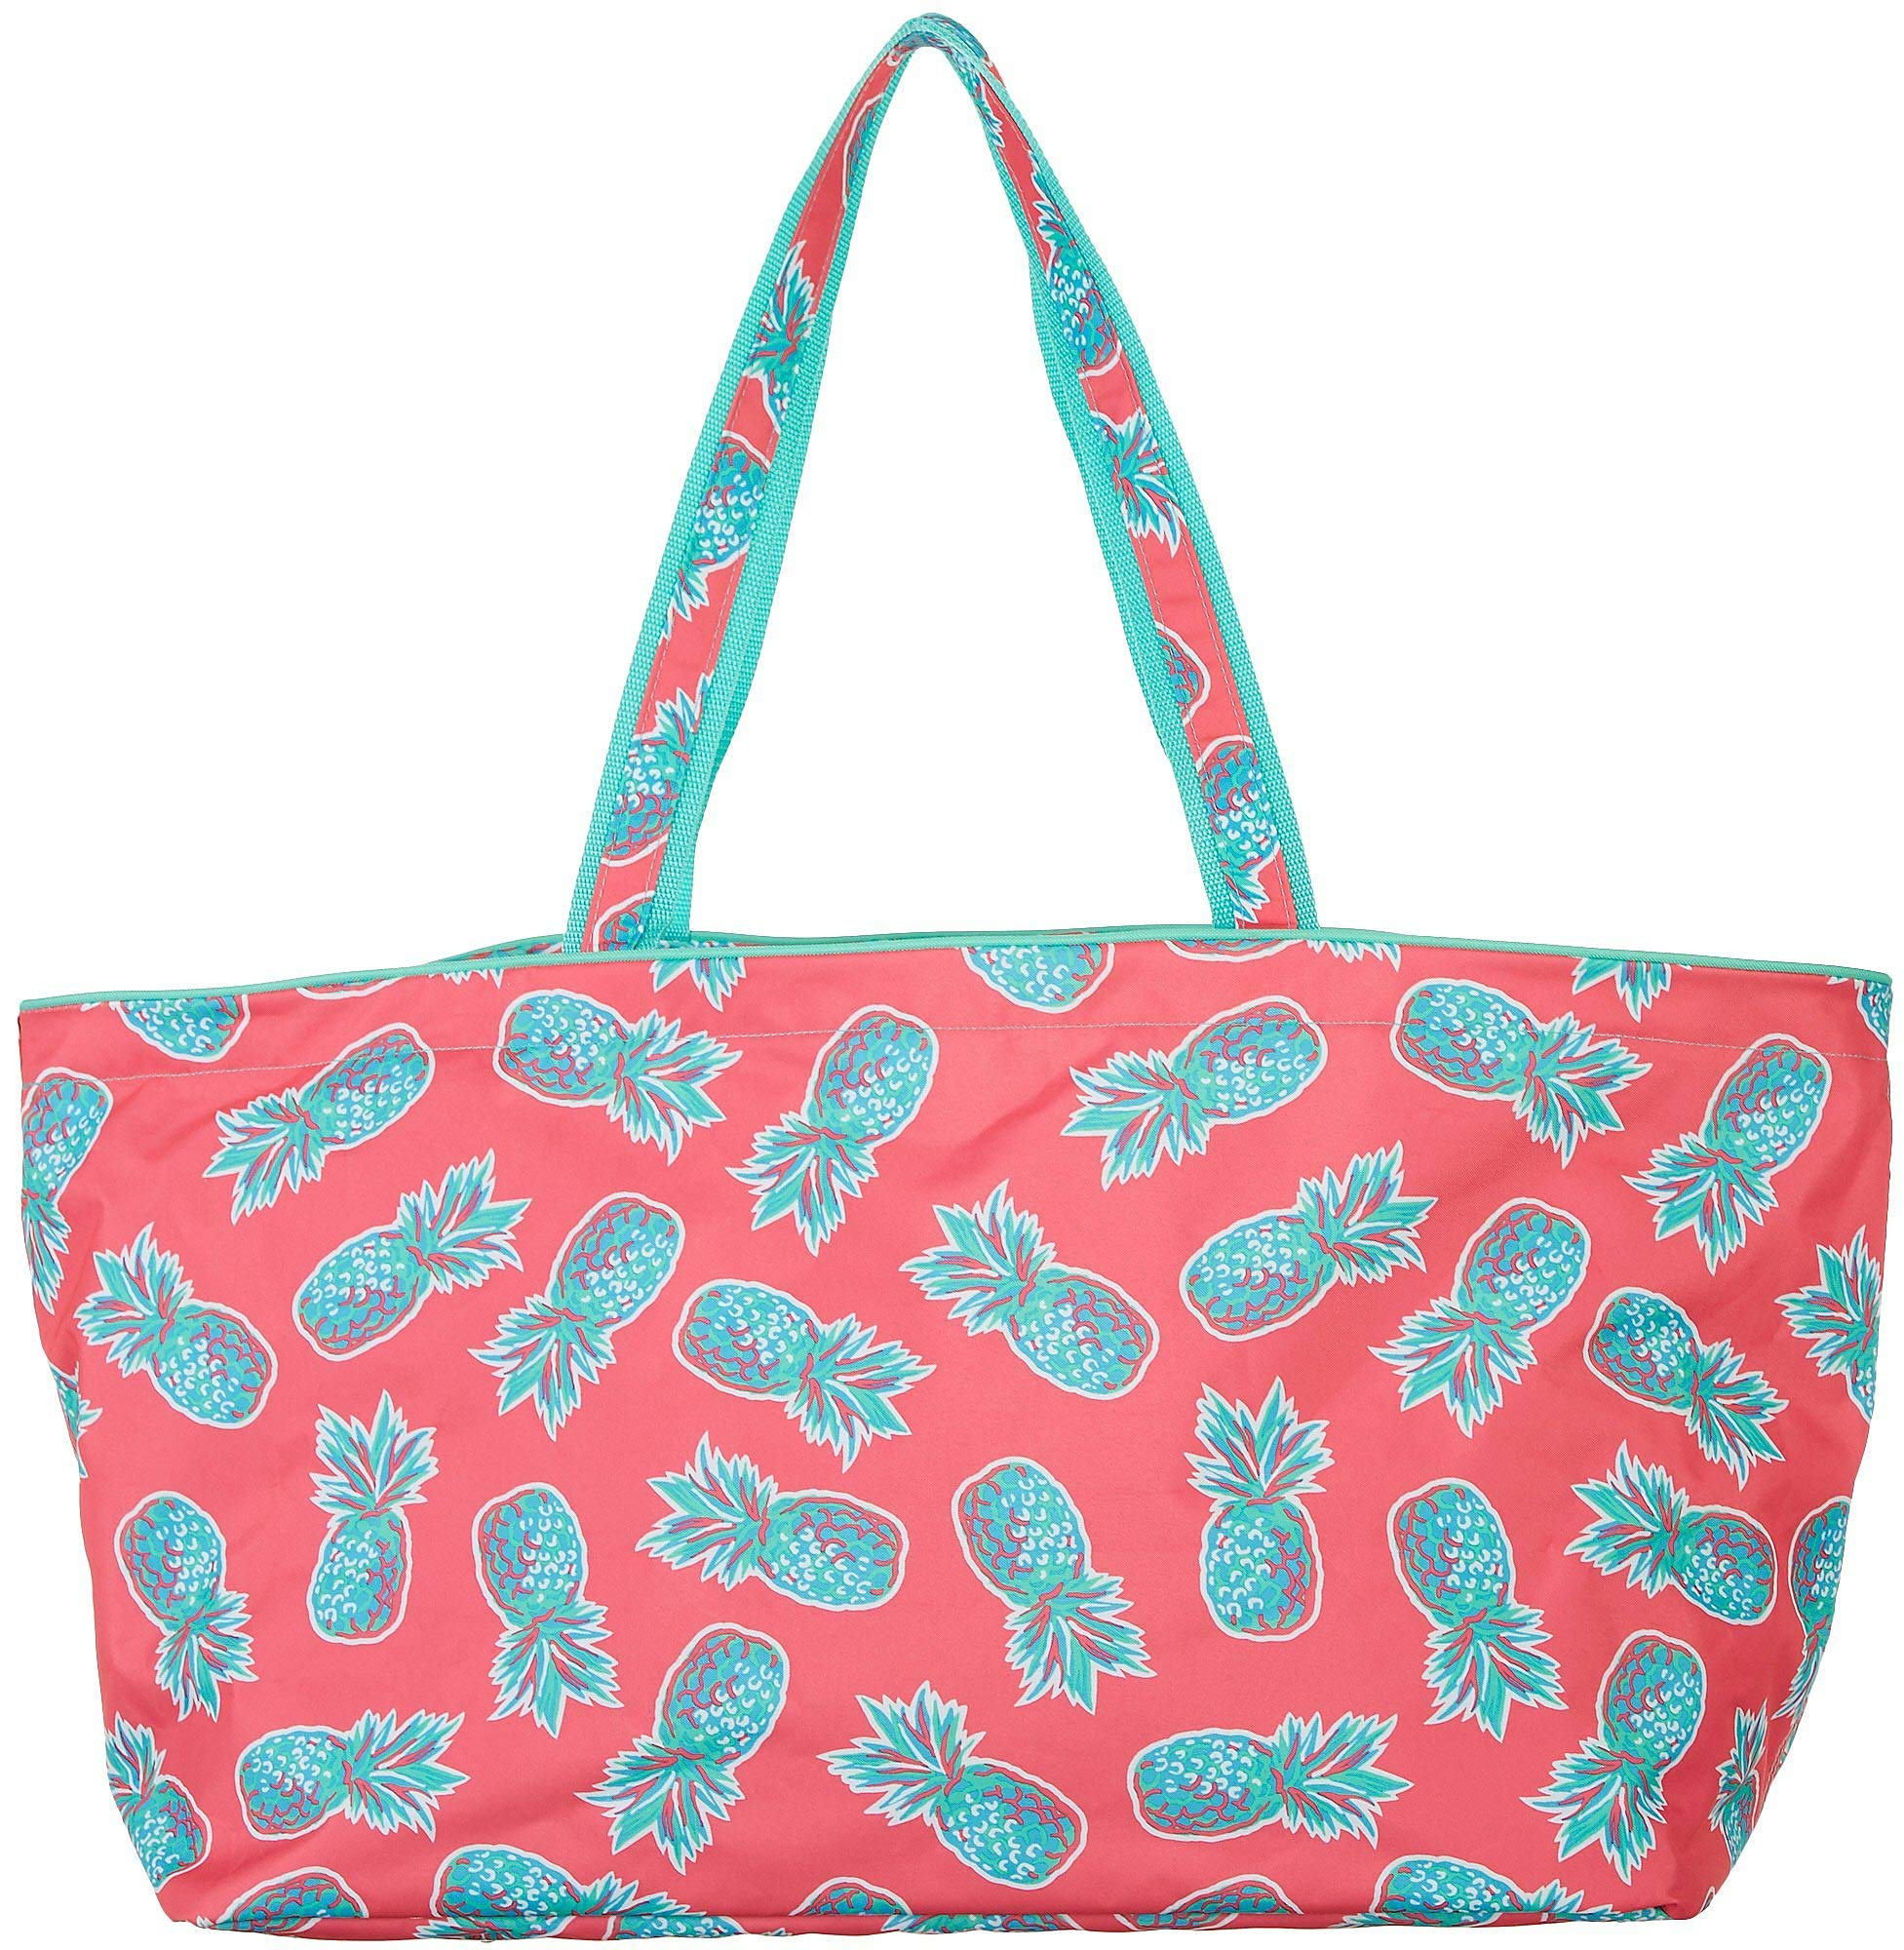 Tackle & Tides Pineapple Ultimate Tote One Size Pink/Aqua Blue